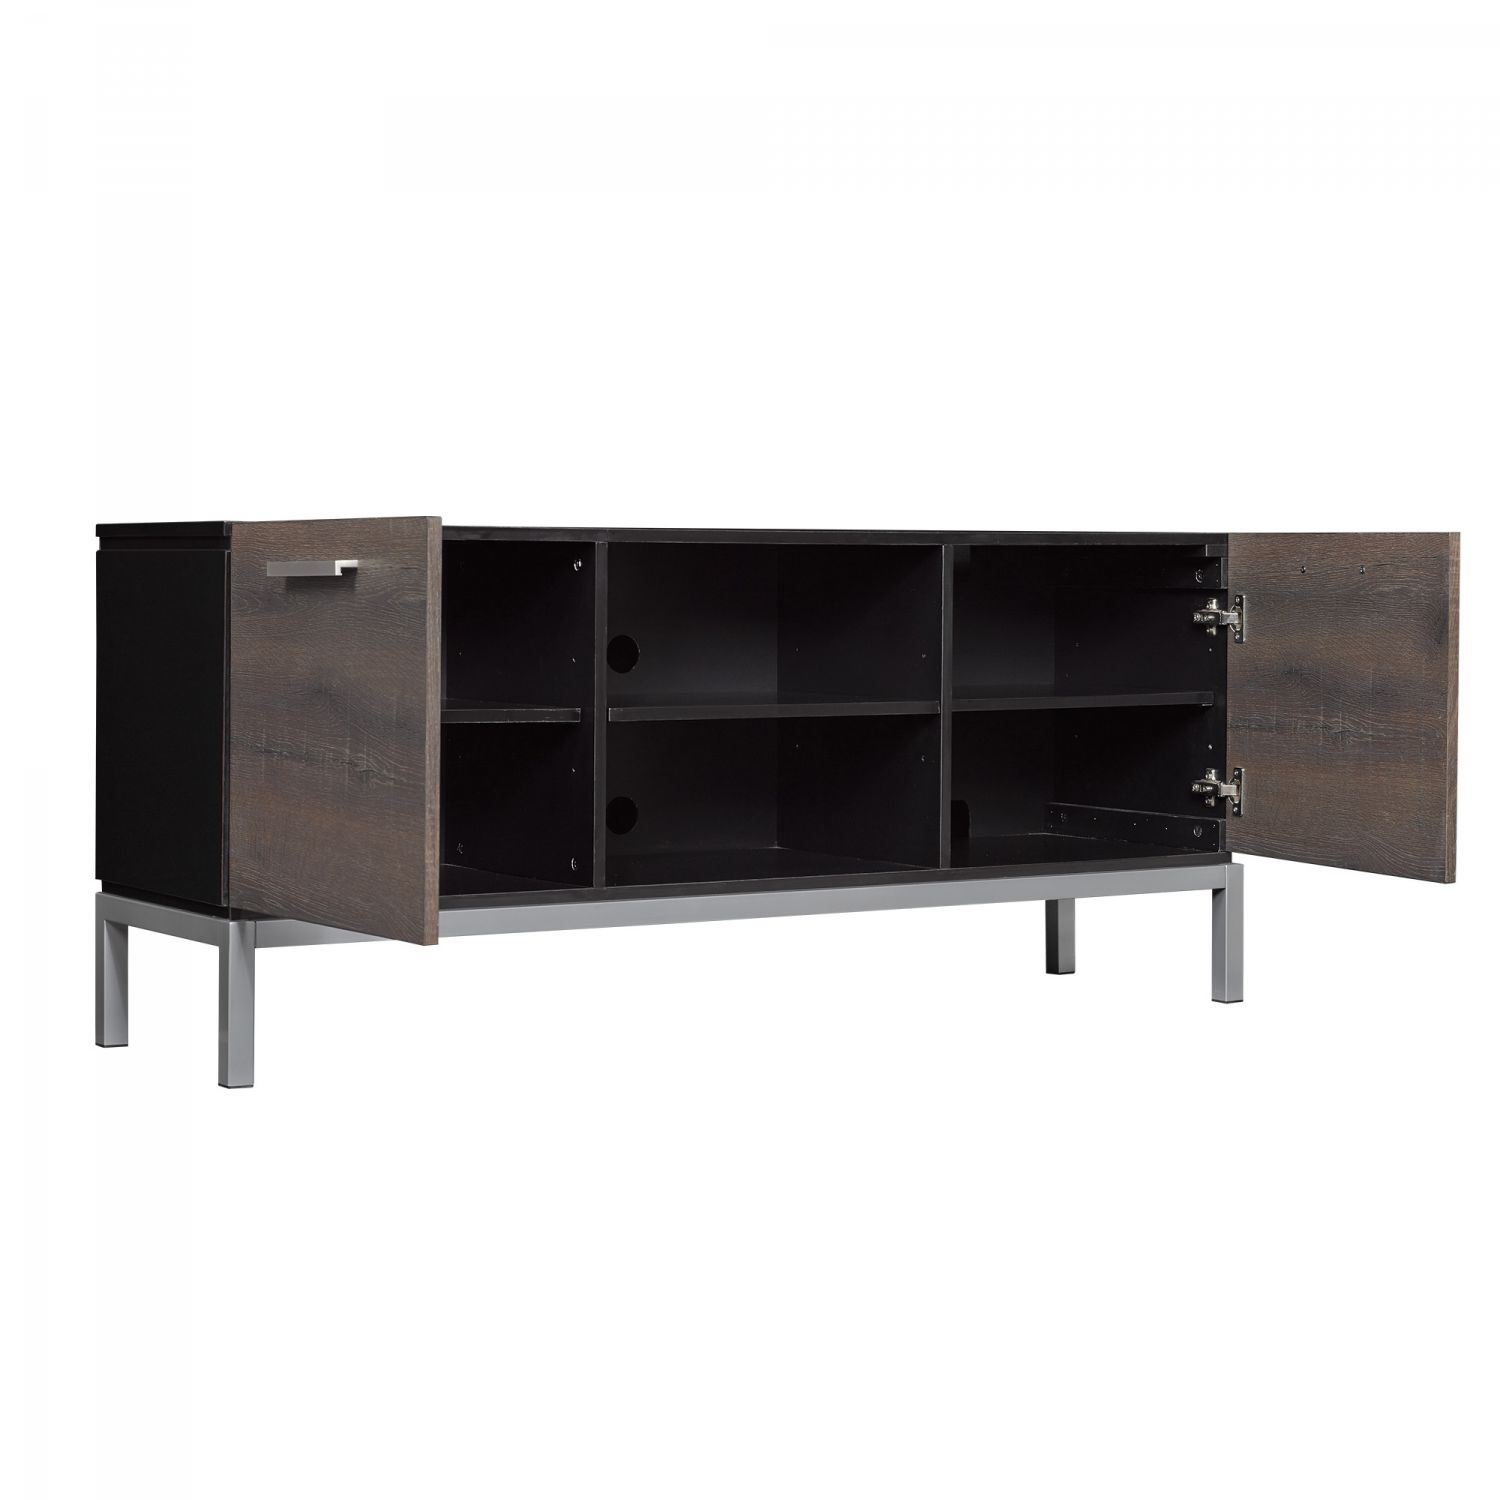 Cutler Bay Tv Stand For Tvs Up To 60 Black D Tc52 6337 Pb01 Classic Flame Twin Star Afw